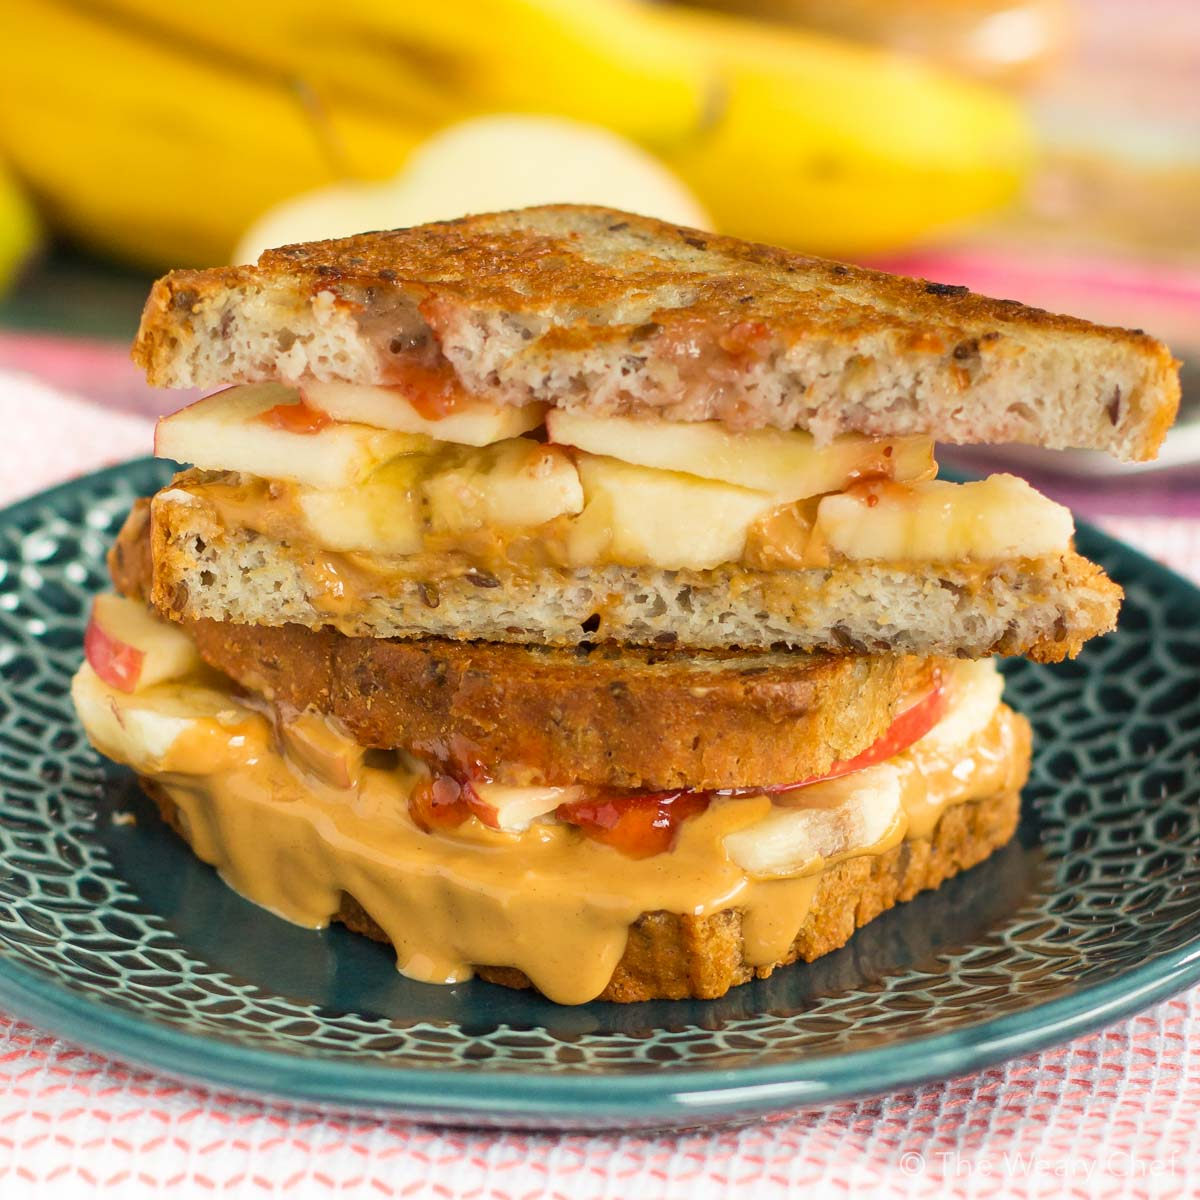 Your peanut butter jelly sandwich just got an upgrade. Try this ooey-gooey grilled PBJ with banana and apple, and you'll never want to go back to the original!